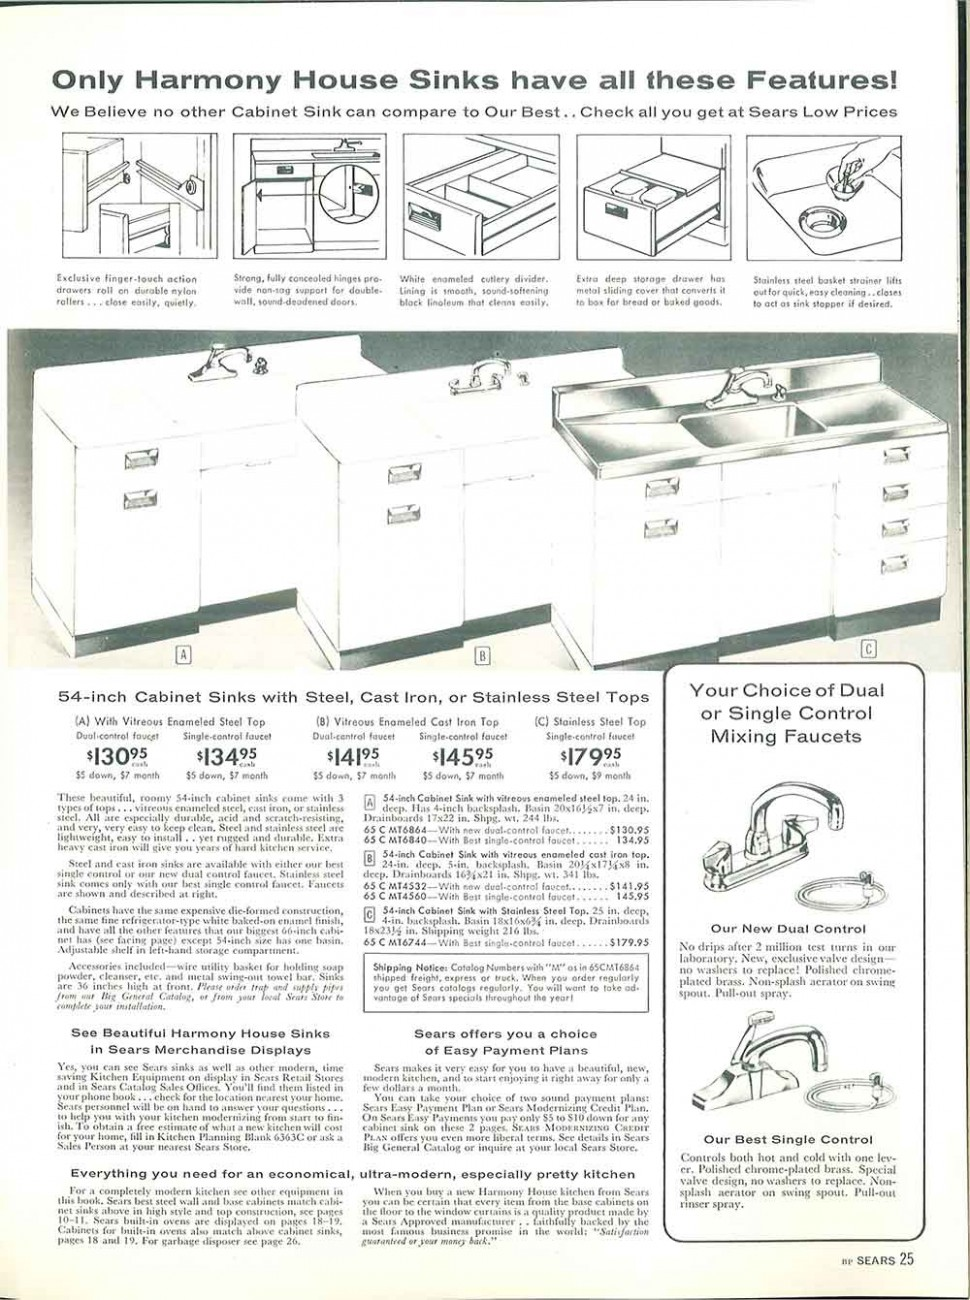 10 Sears kitchen cabinets and more - 10 page catalog - - Vintage Sears Kitchen Cabinets